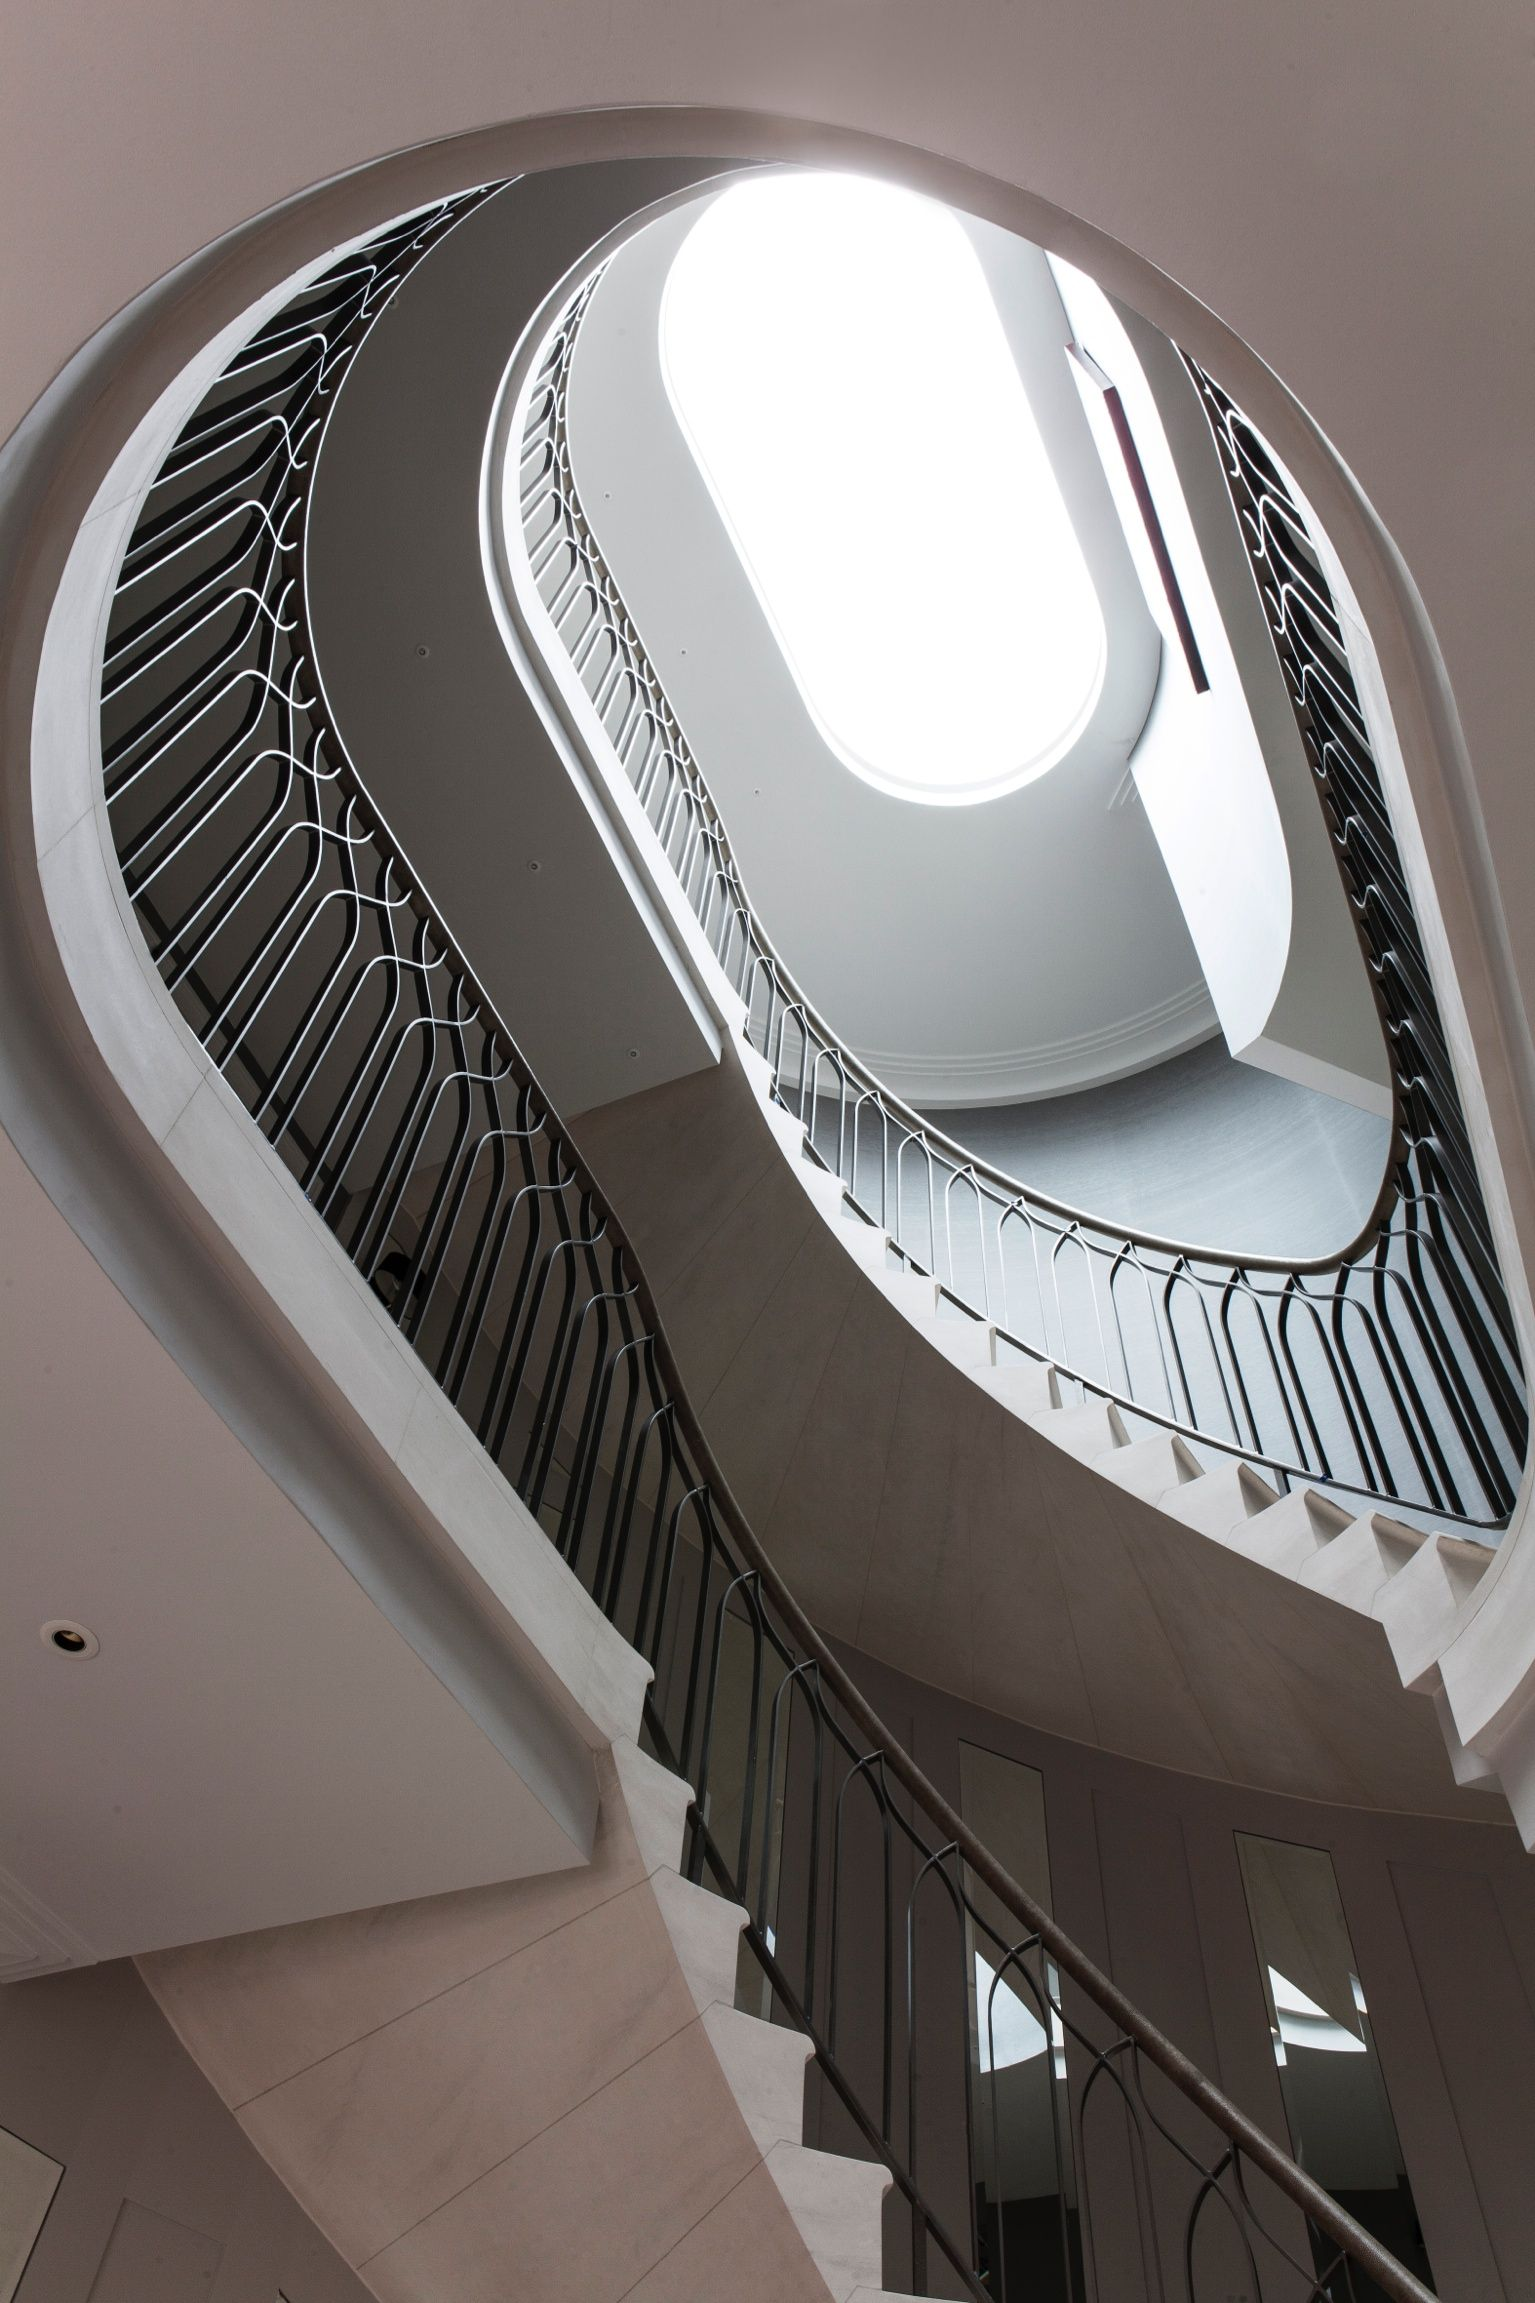 Edward Philips Creative Swirling staircase in beautiful